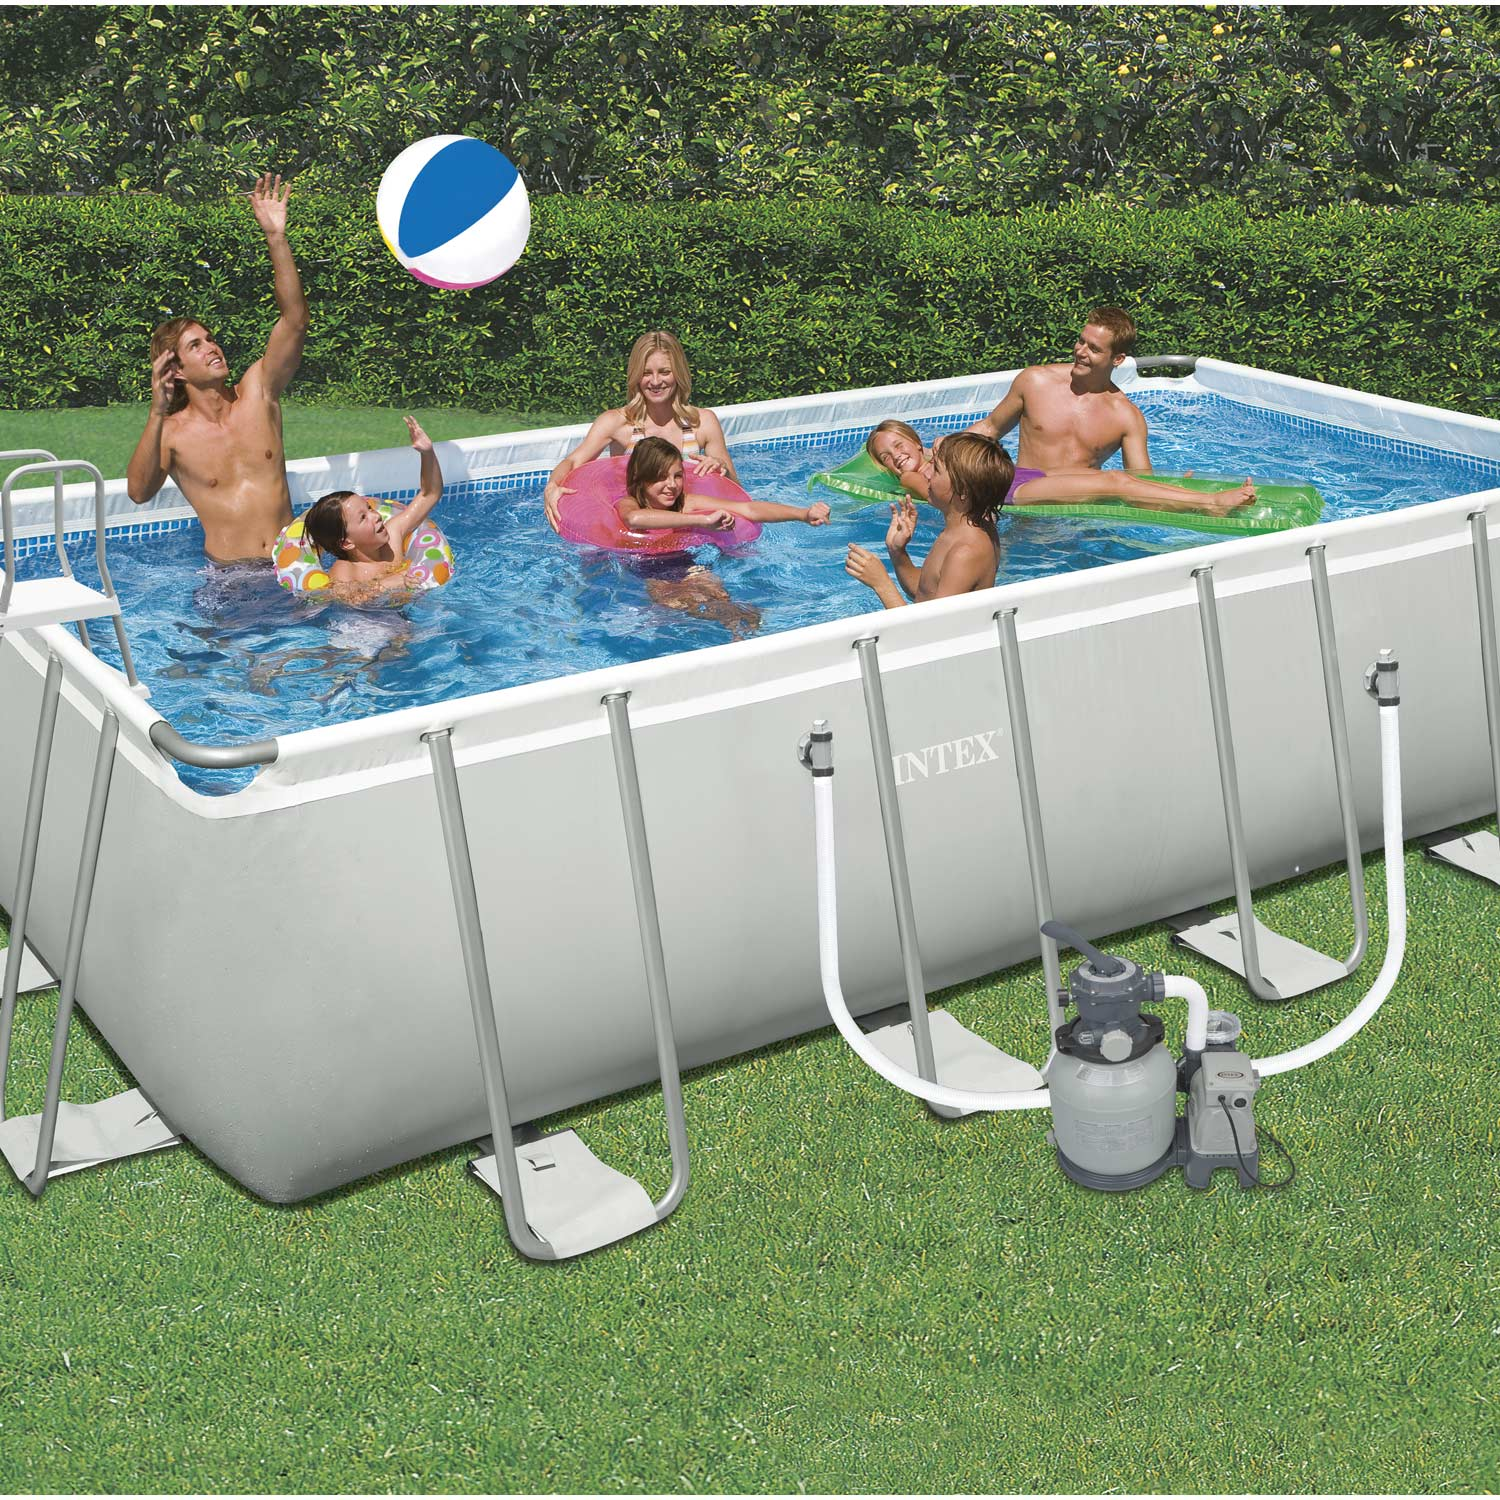 Piscine hors sol autoportante tubulaire intex l x l for Piscine en bois rectangulaire